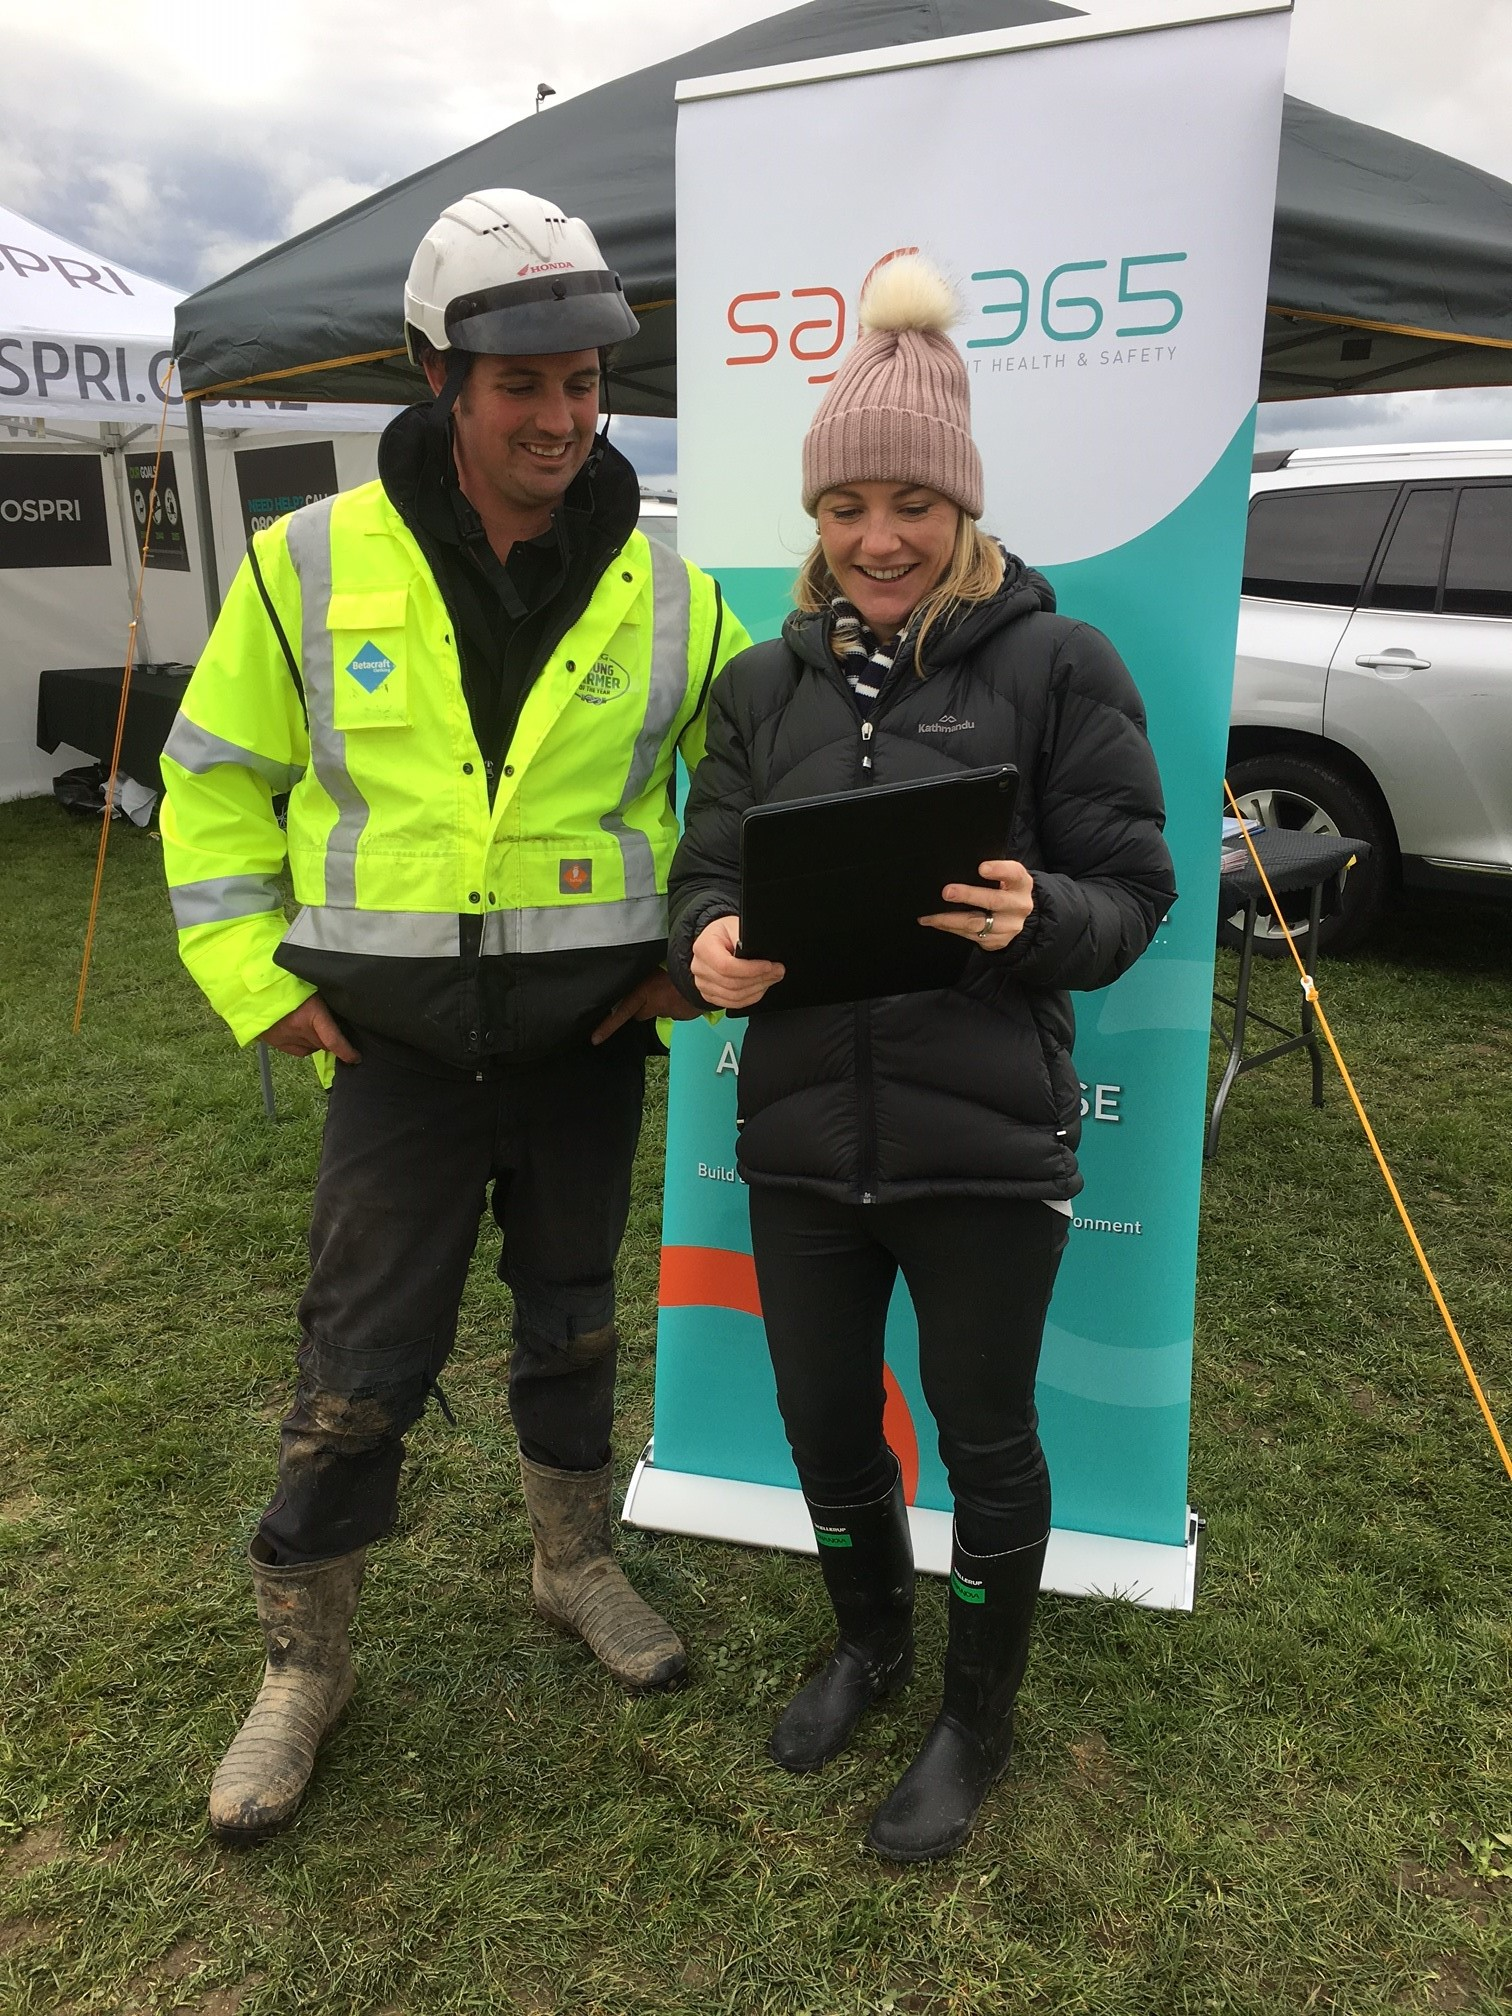 Amanda Barker takes on of NZ's young farmers on a Safe365 tour.